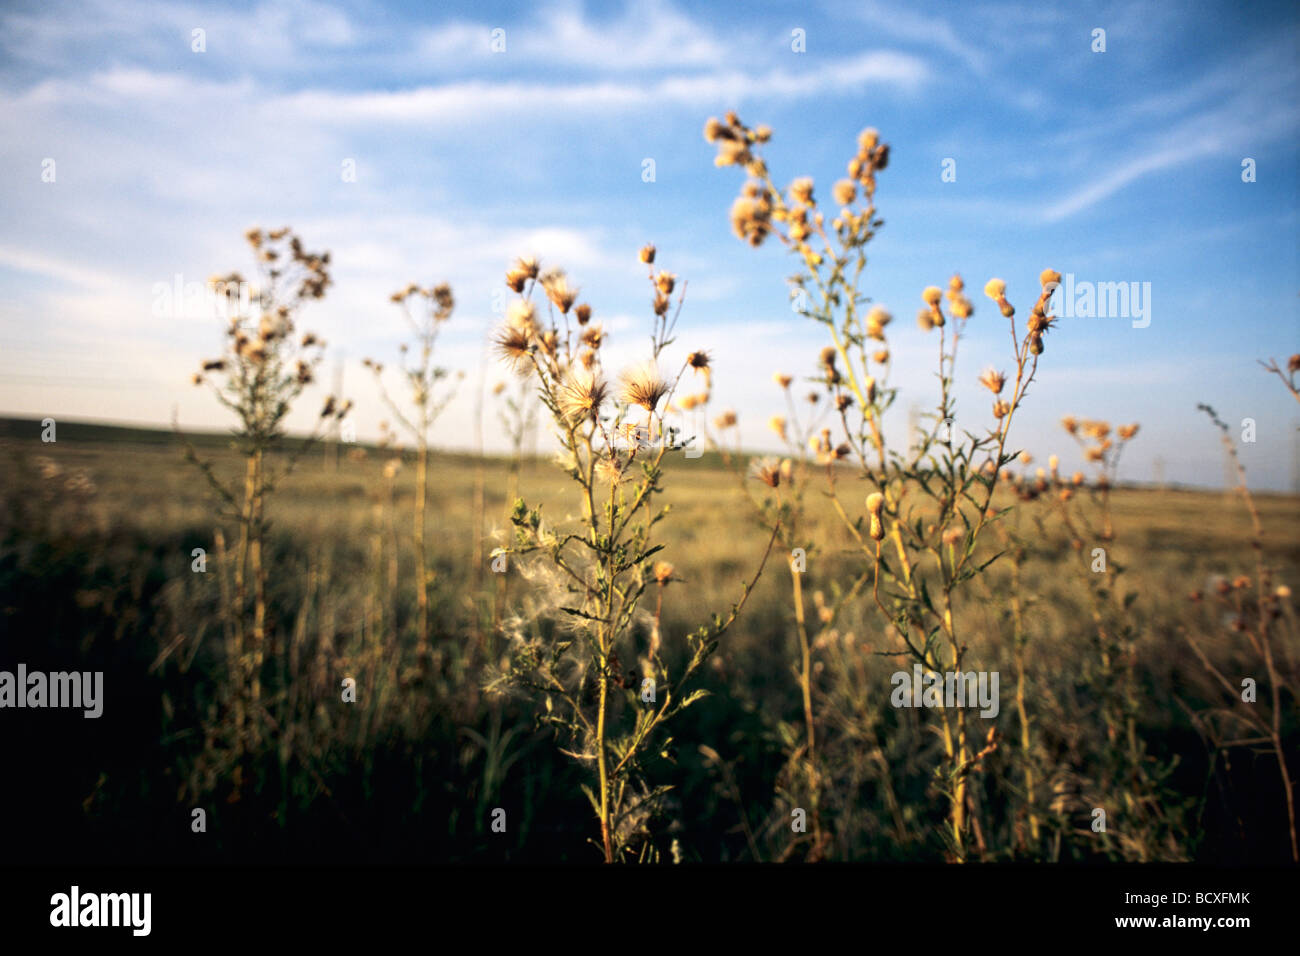 flowers, plants in a field with blue sky in background - Stock Image